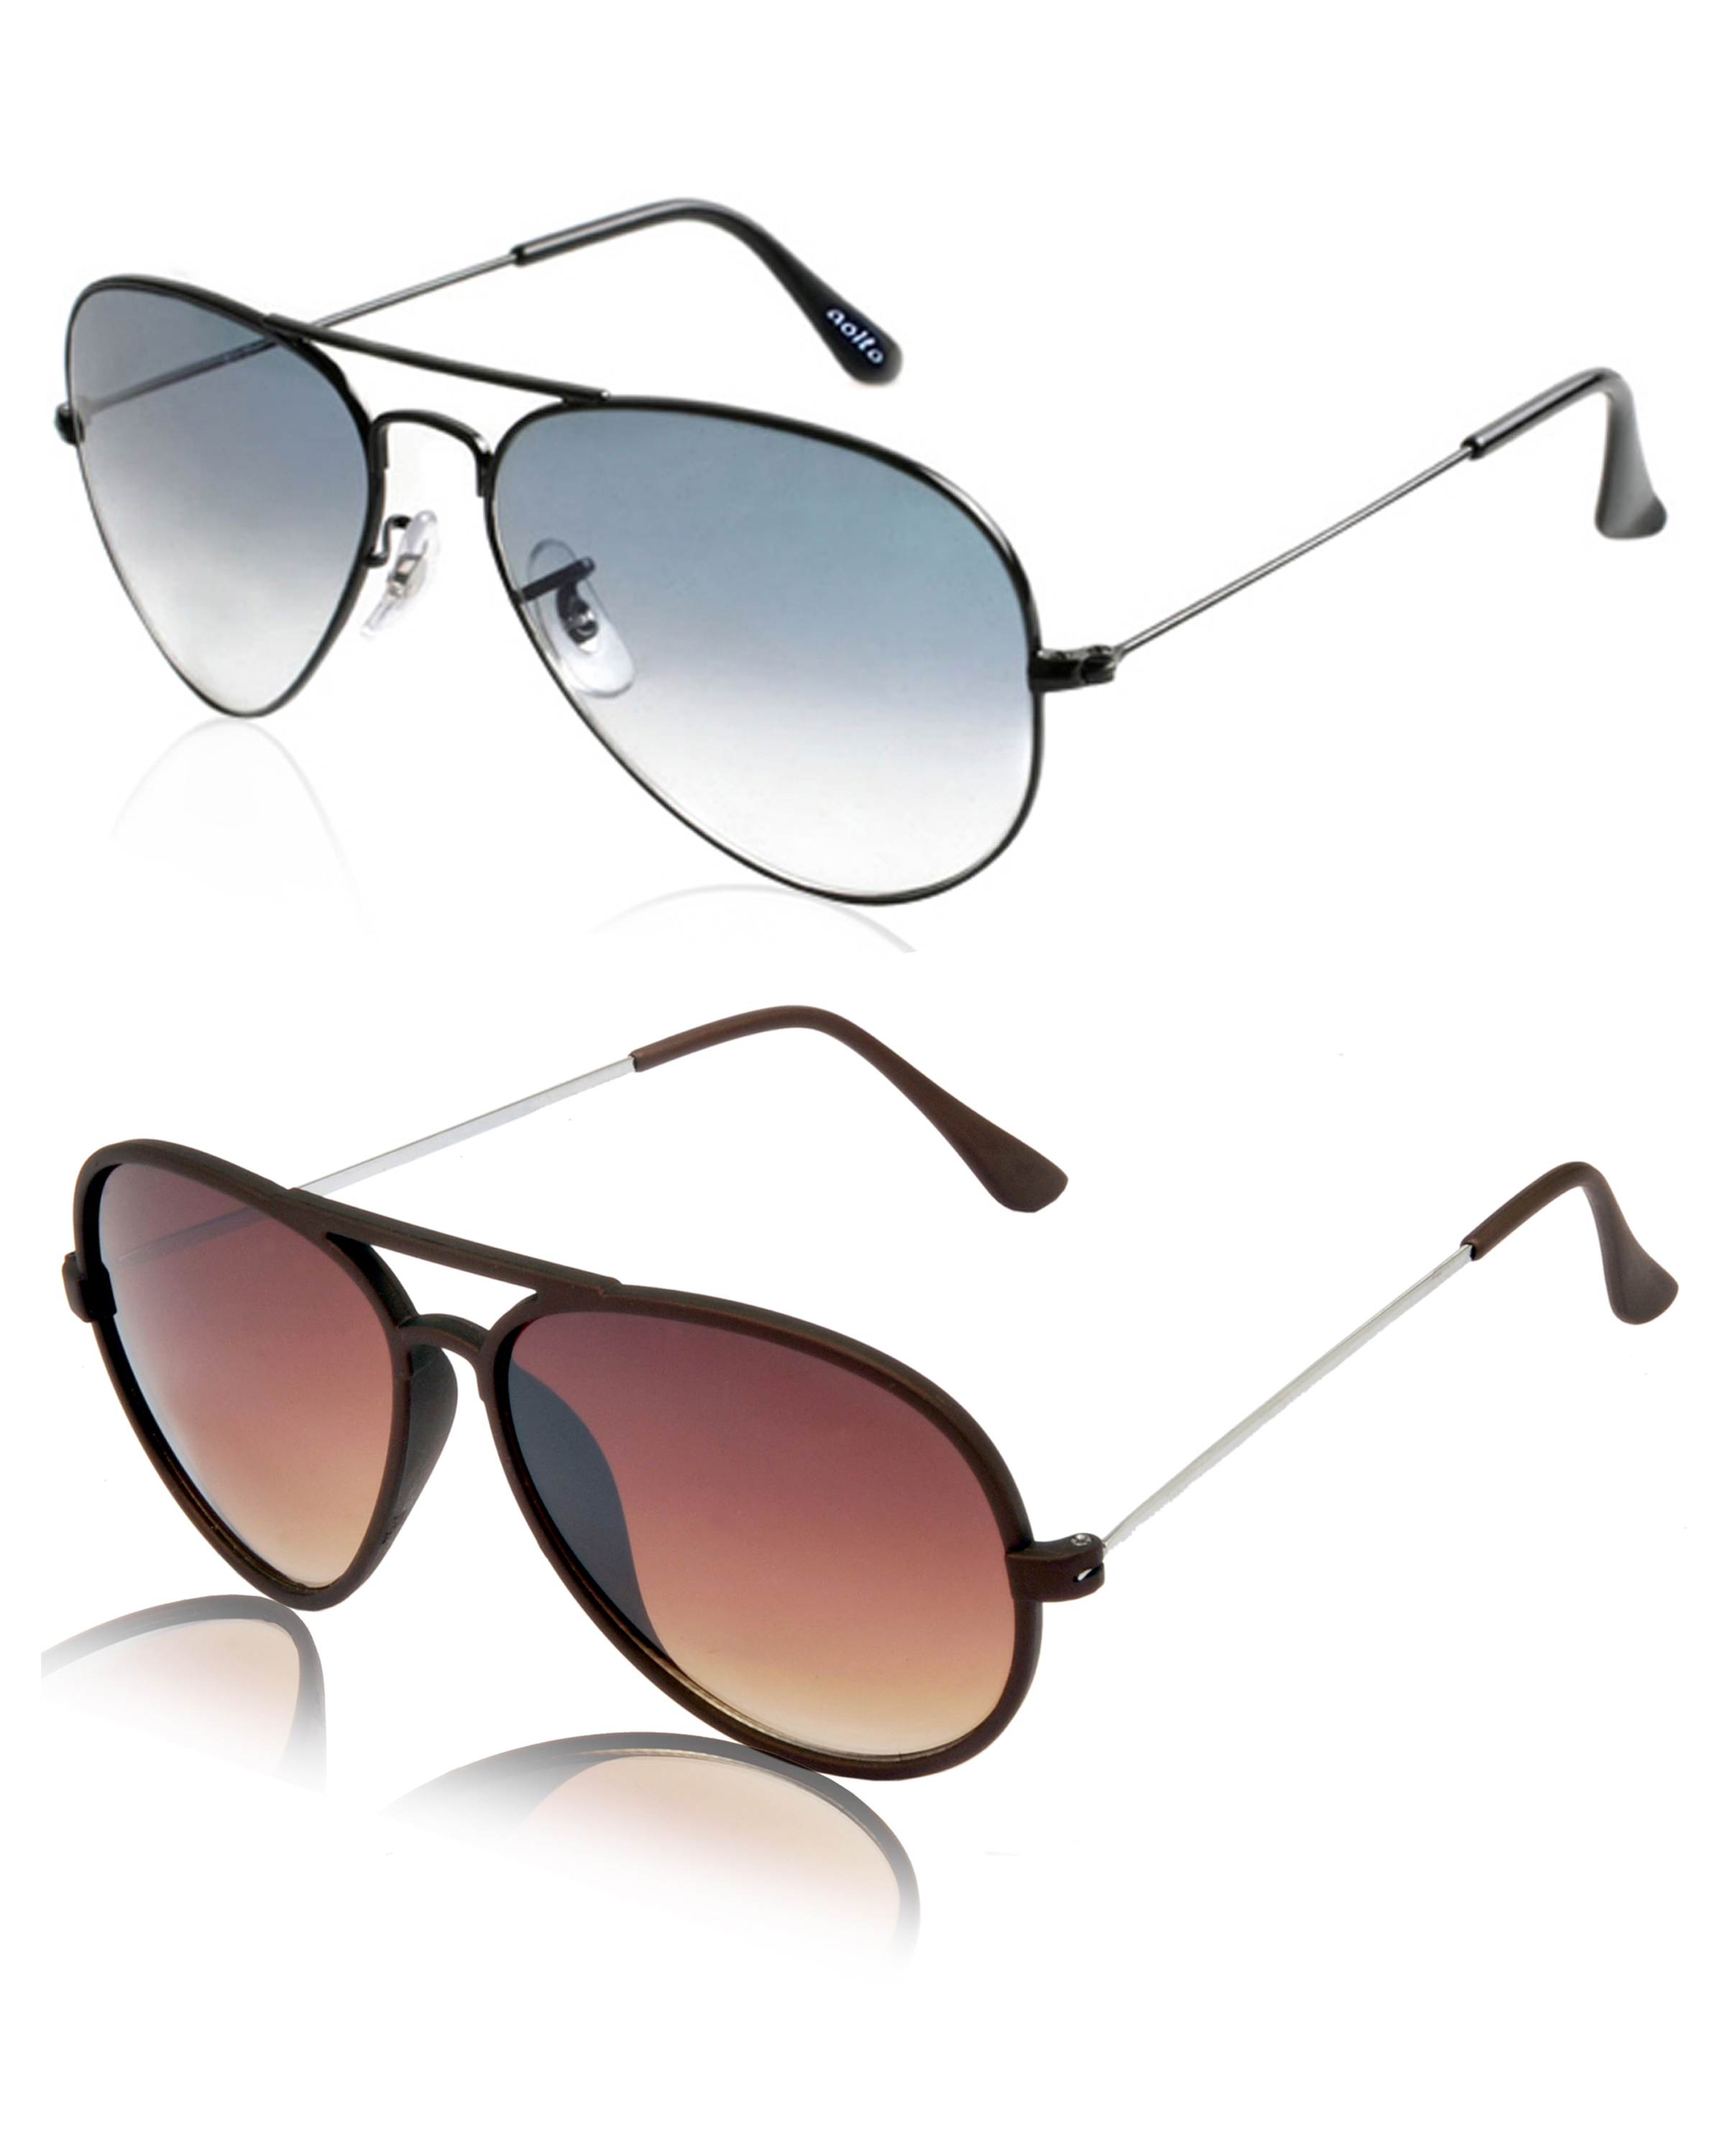 Aoito Classy Aviator Sunglasses & Aoito Stylish Brown Aviator Sunglasses.